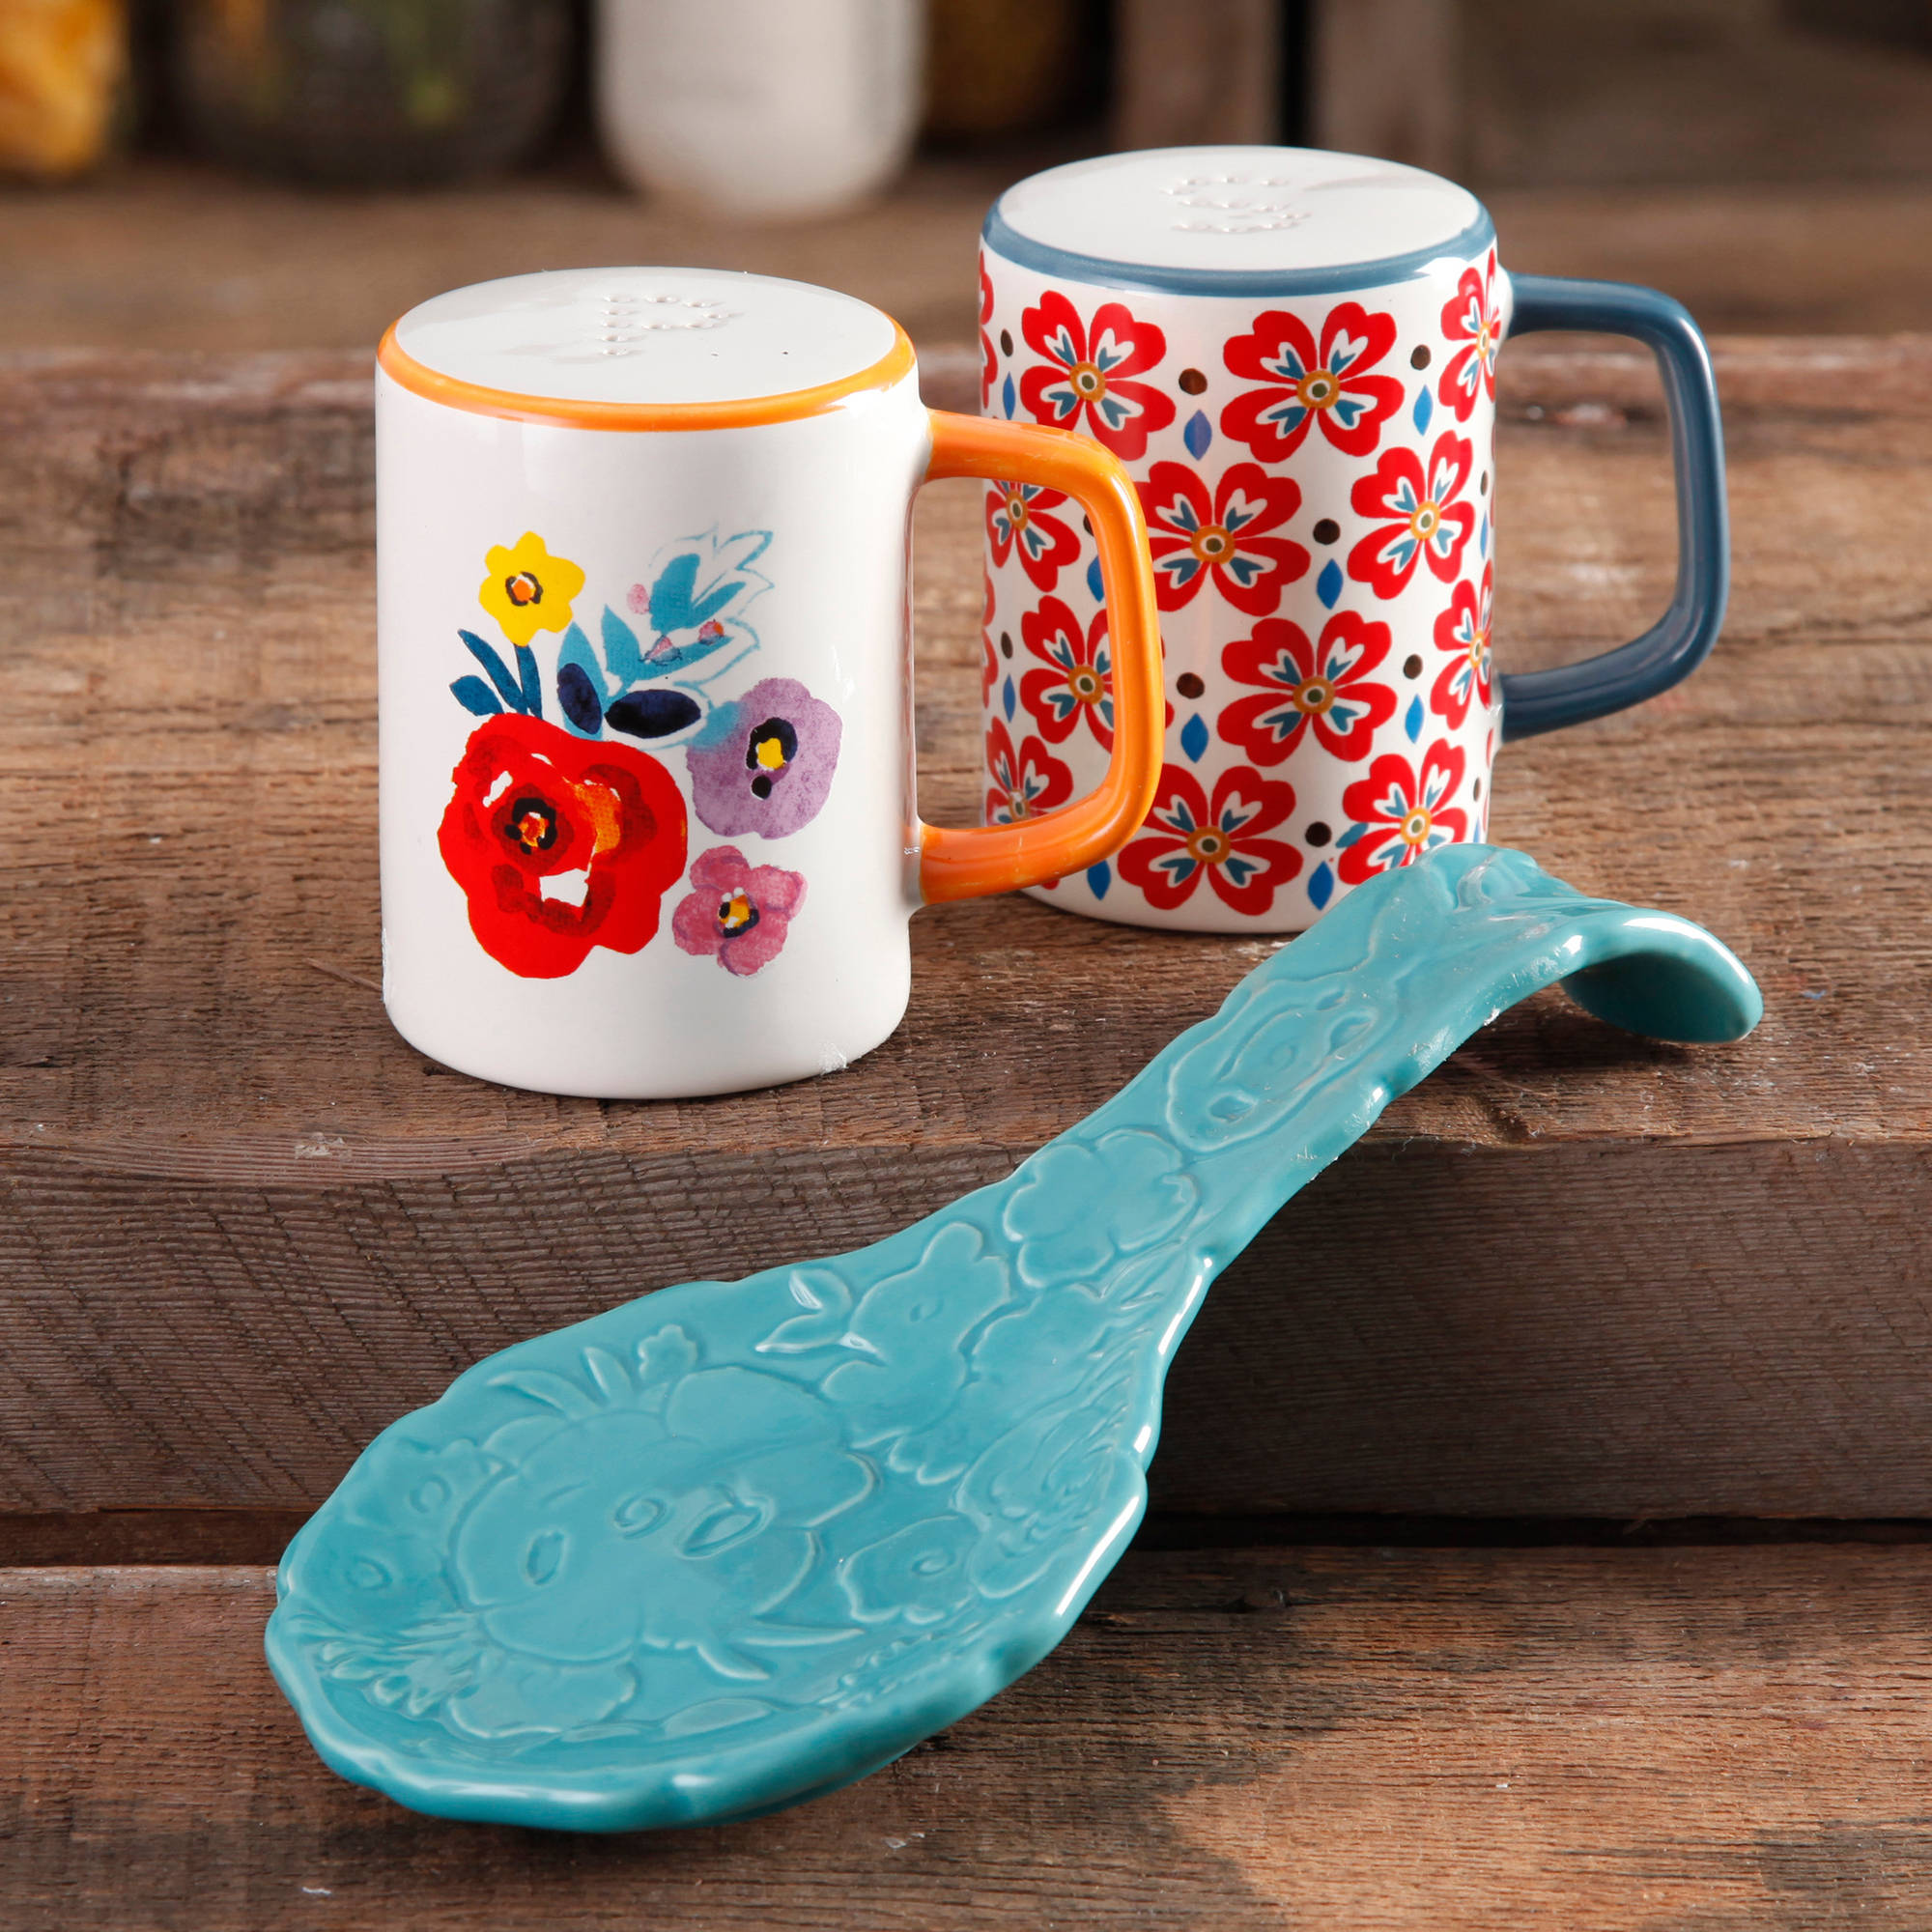 The Pioneer Woman Flea Market Stoneware Turquoise Spoon Rest & Salt And Pepper Set